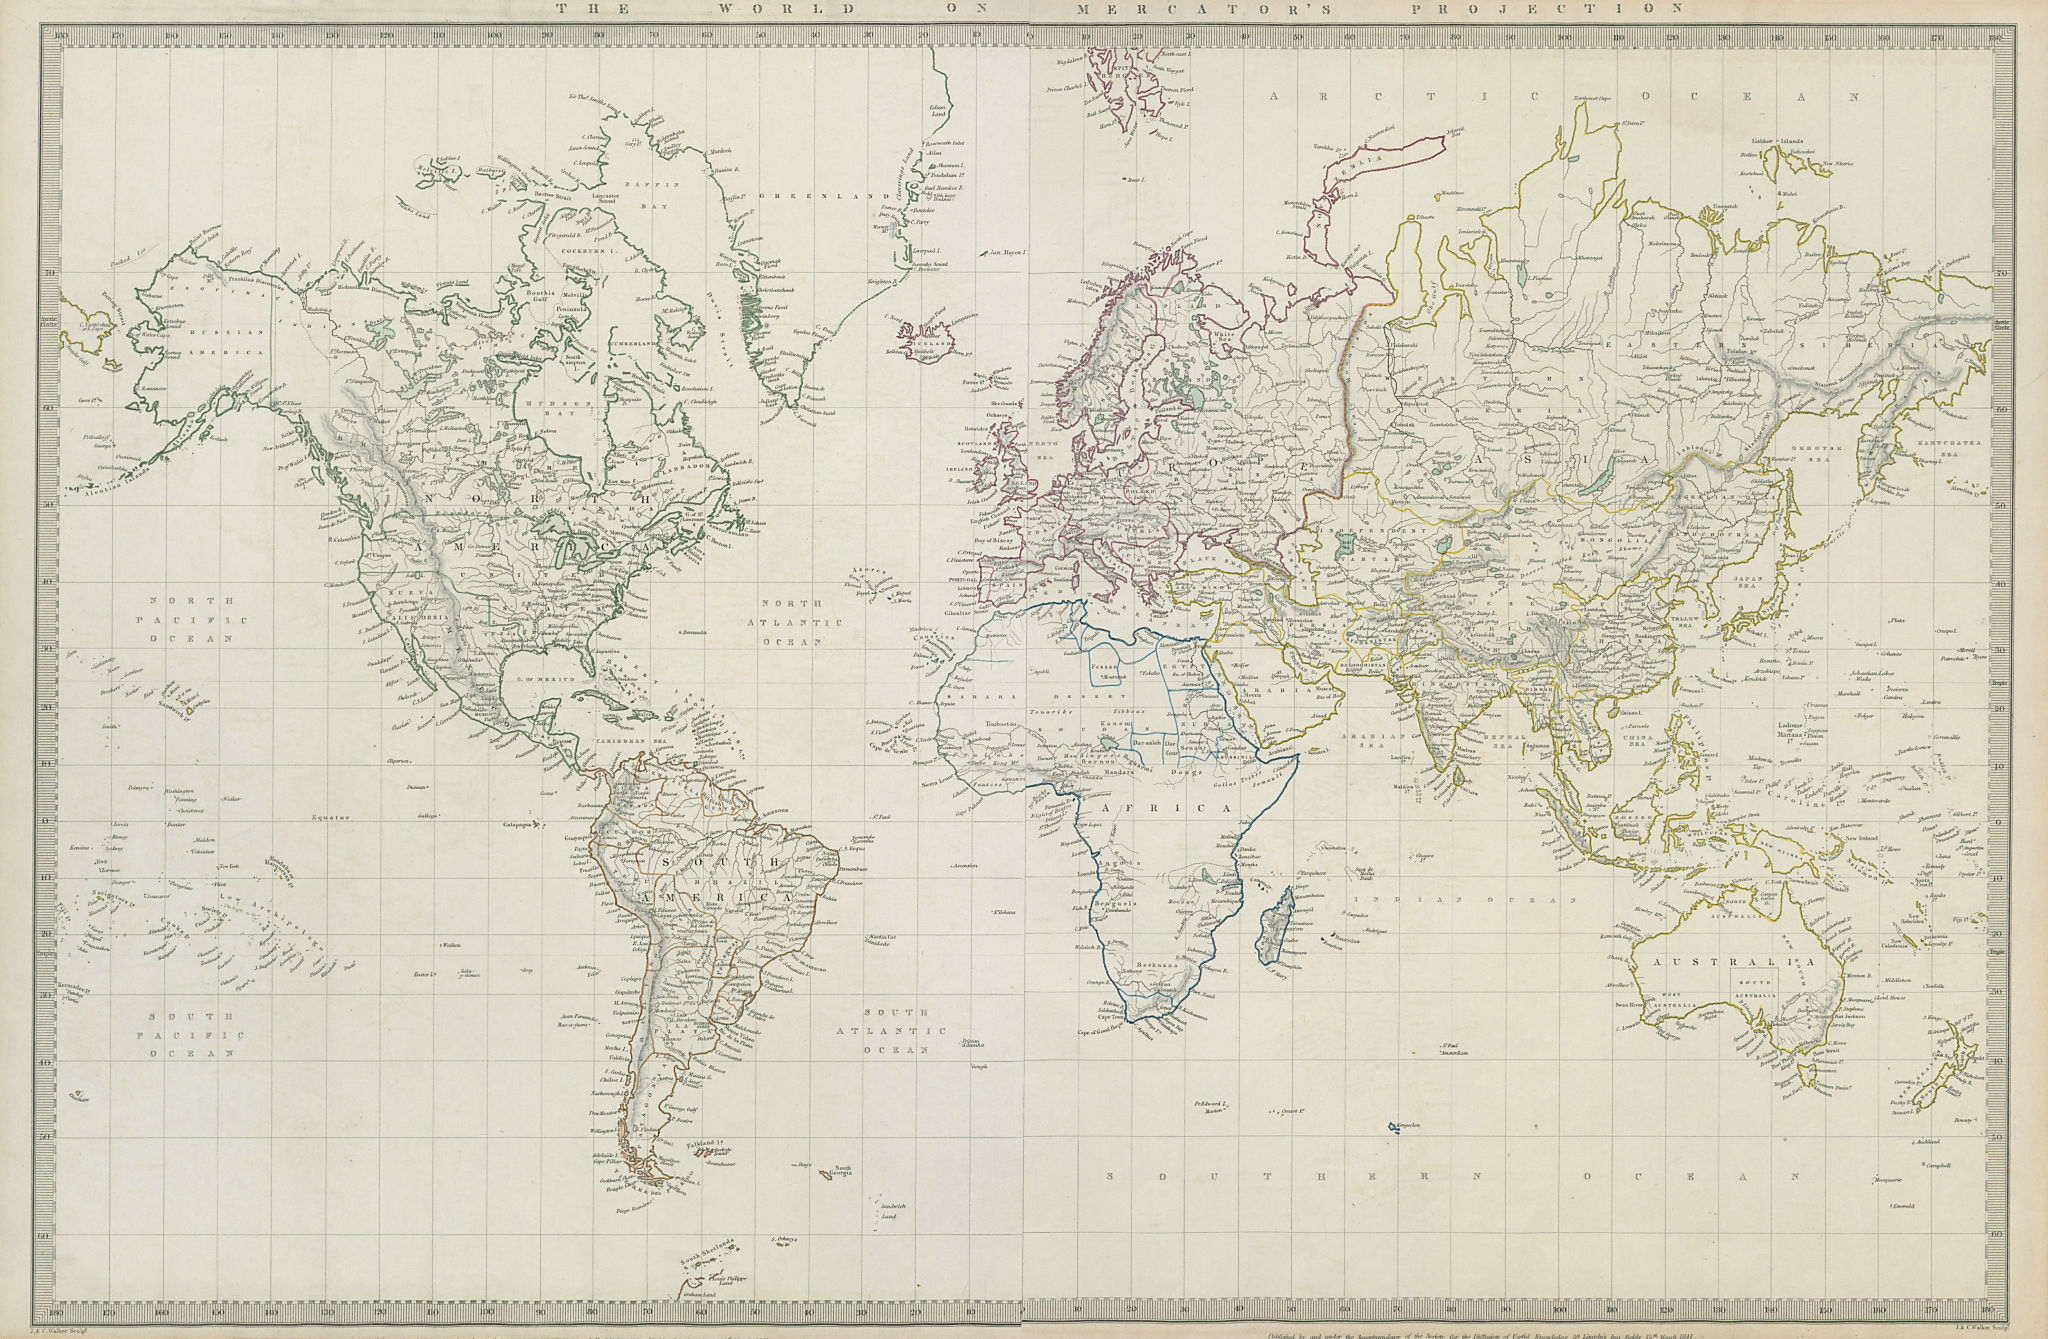 Associate Product WORLD ON MERCATOR'S PROJECTION. Pre-Mexican-American war. SDUK 1844 old map